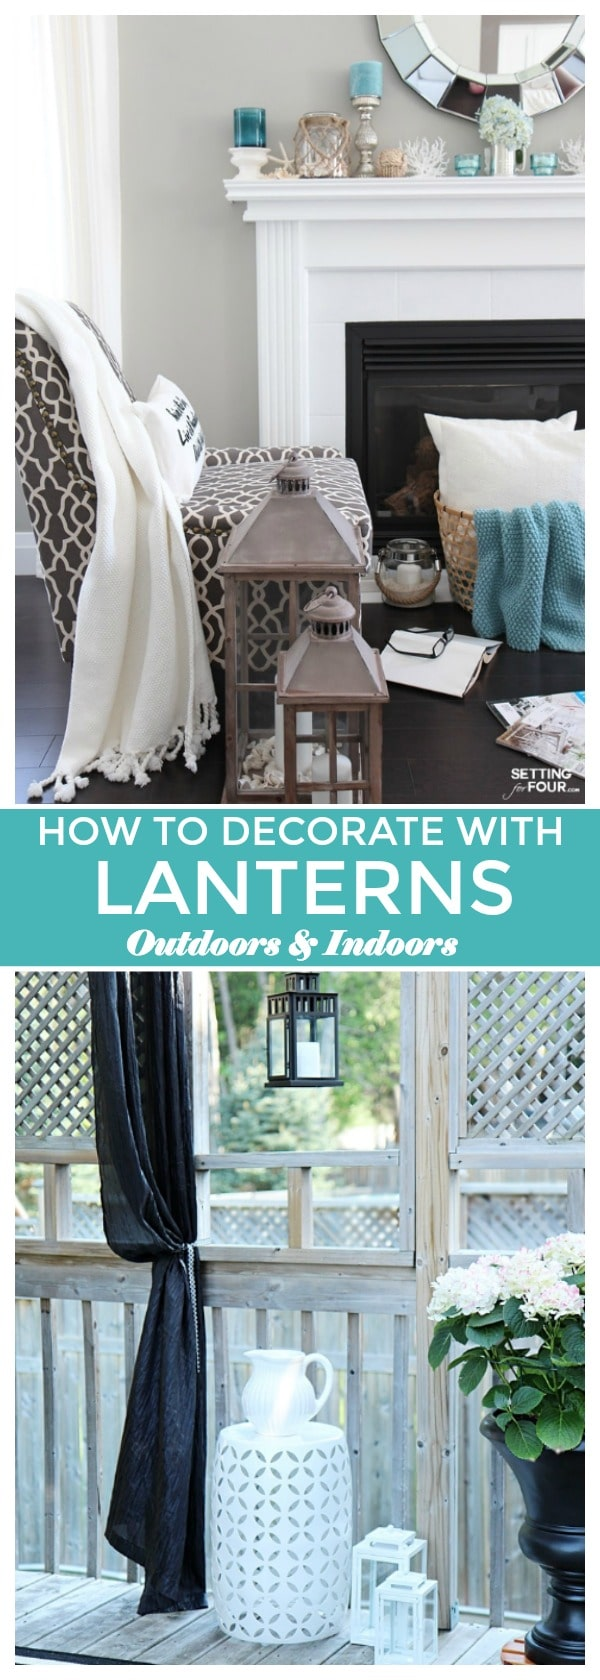 Decorating With Lanterns Outdoor And Indoor Ideas Setting For Four